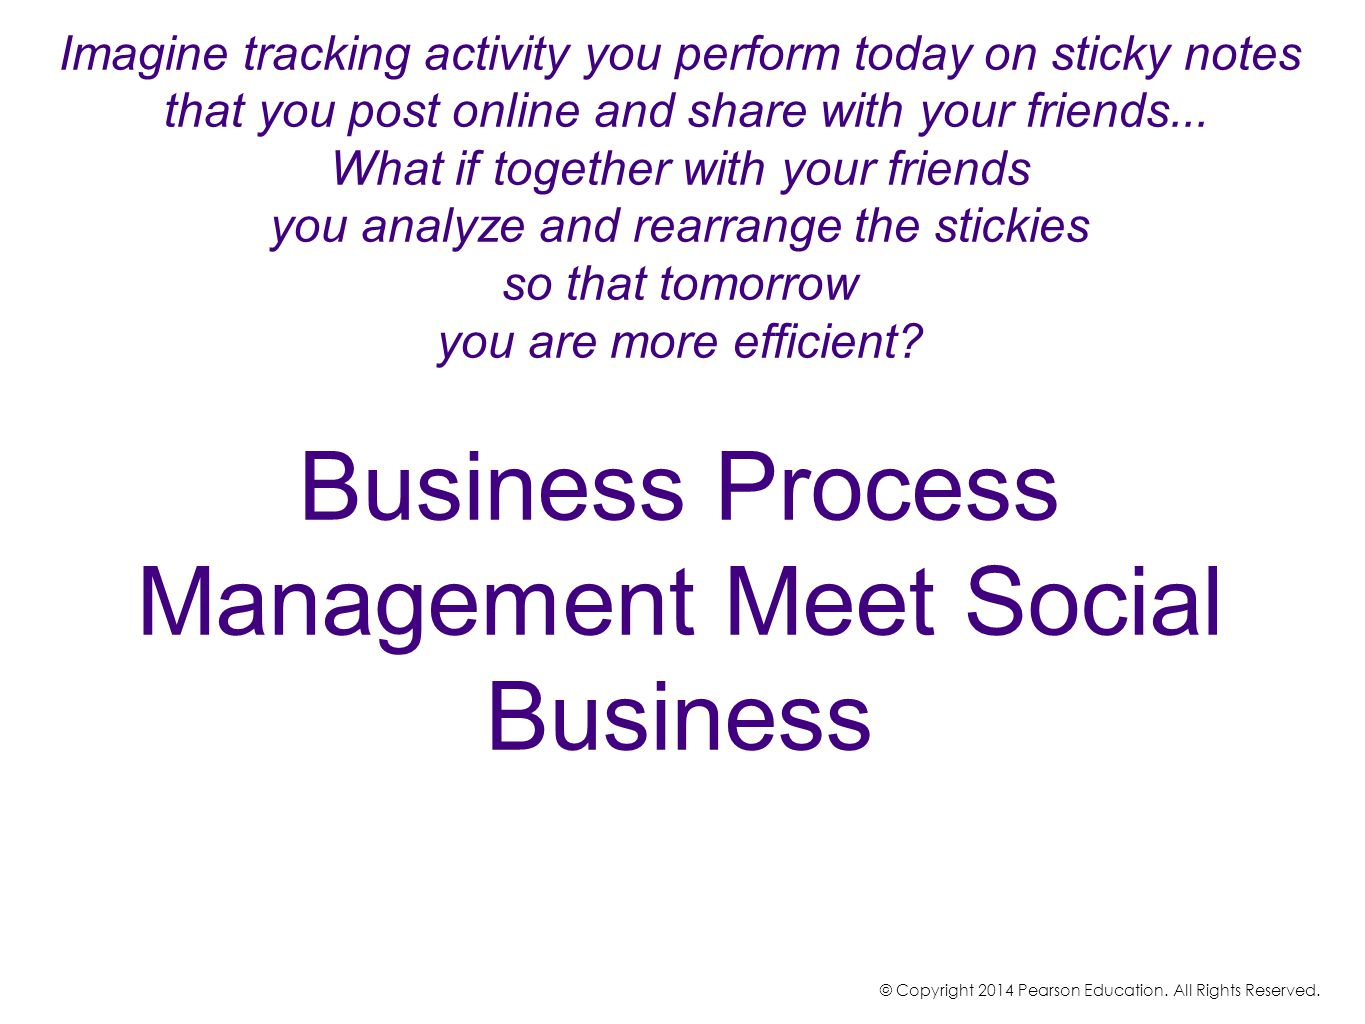 Imagine tracking activity you perform today on sticky notes that you post online and share with your friends... What if together with your friends you analyze and rearrange the stickies so that tomorrow you are more efficient Business Process Management Meet Social Business